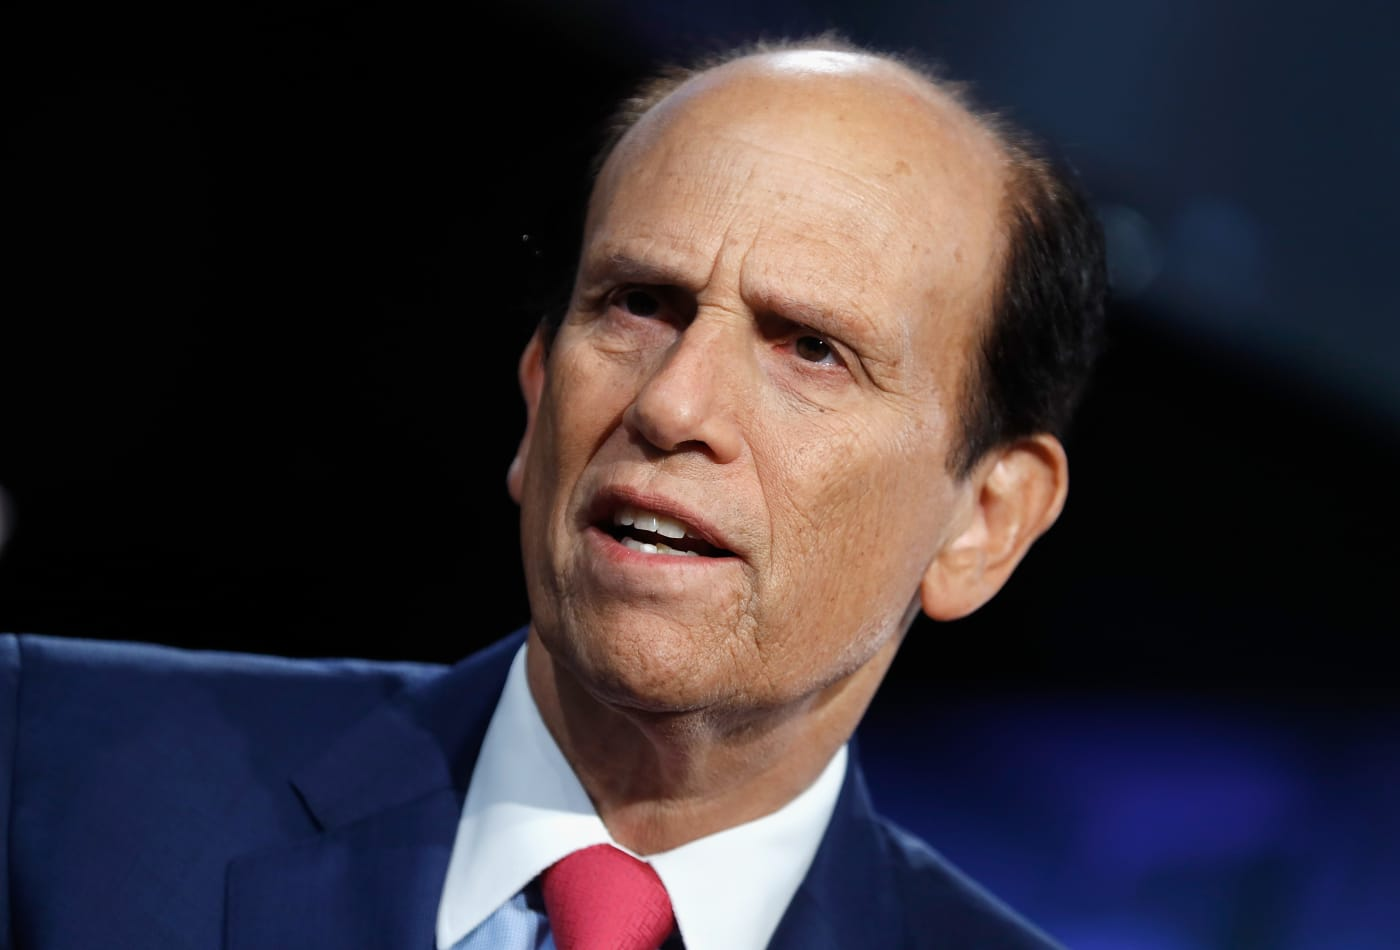 Trump pardons Michael Milken, face of 1980s insider financial scandals